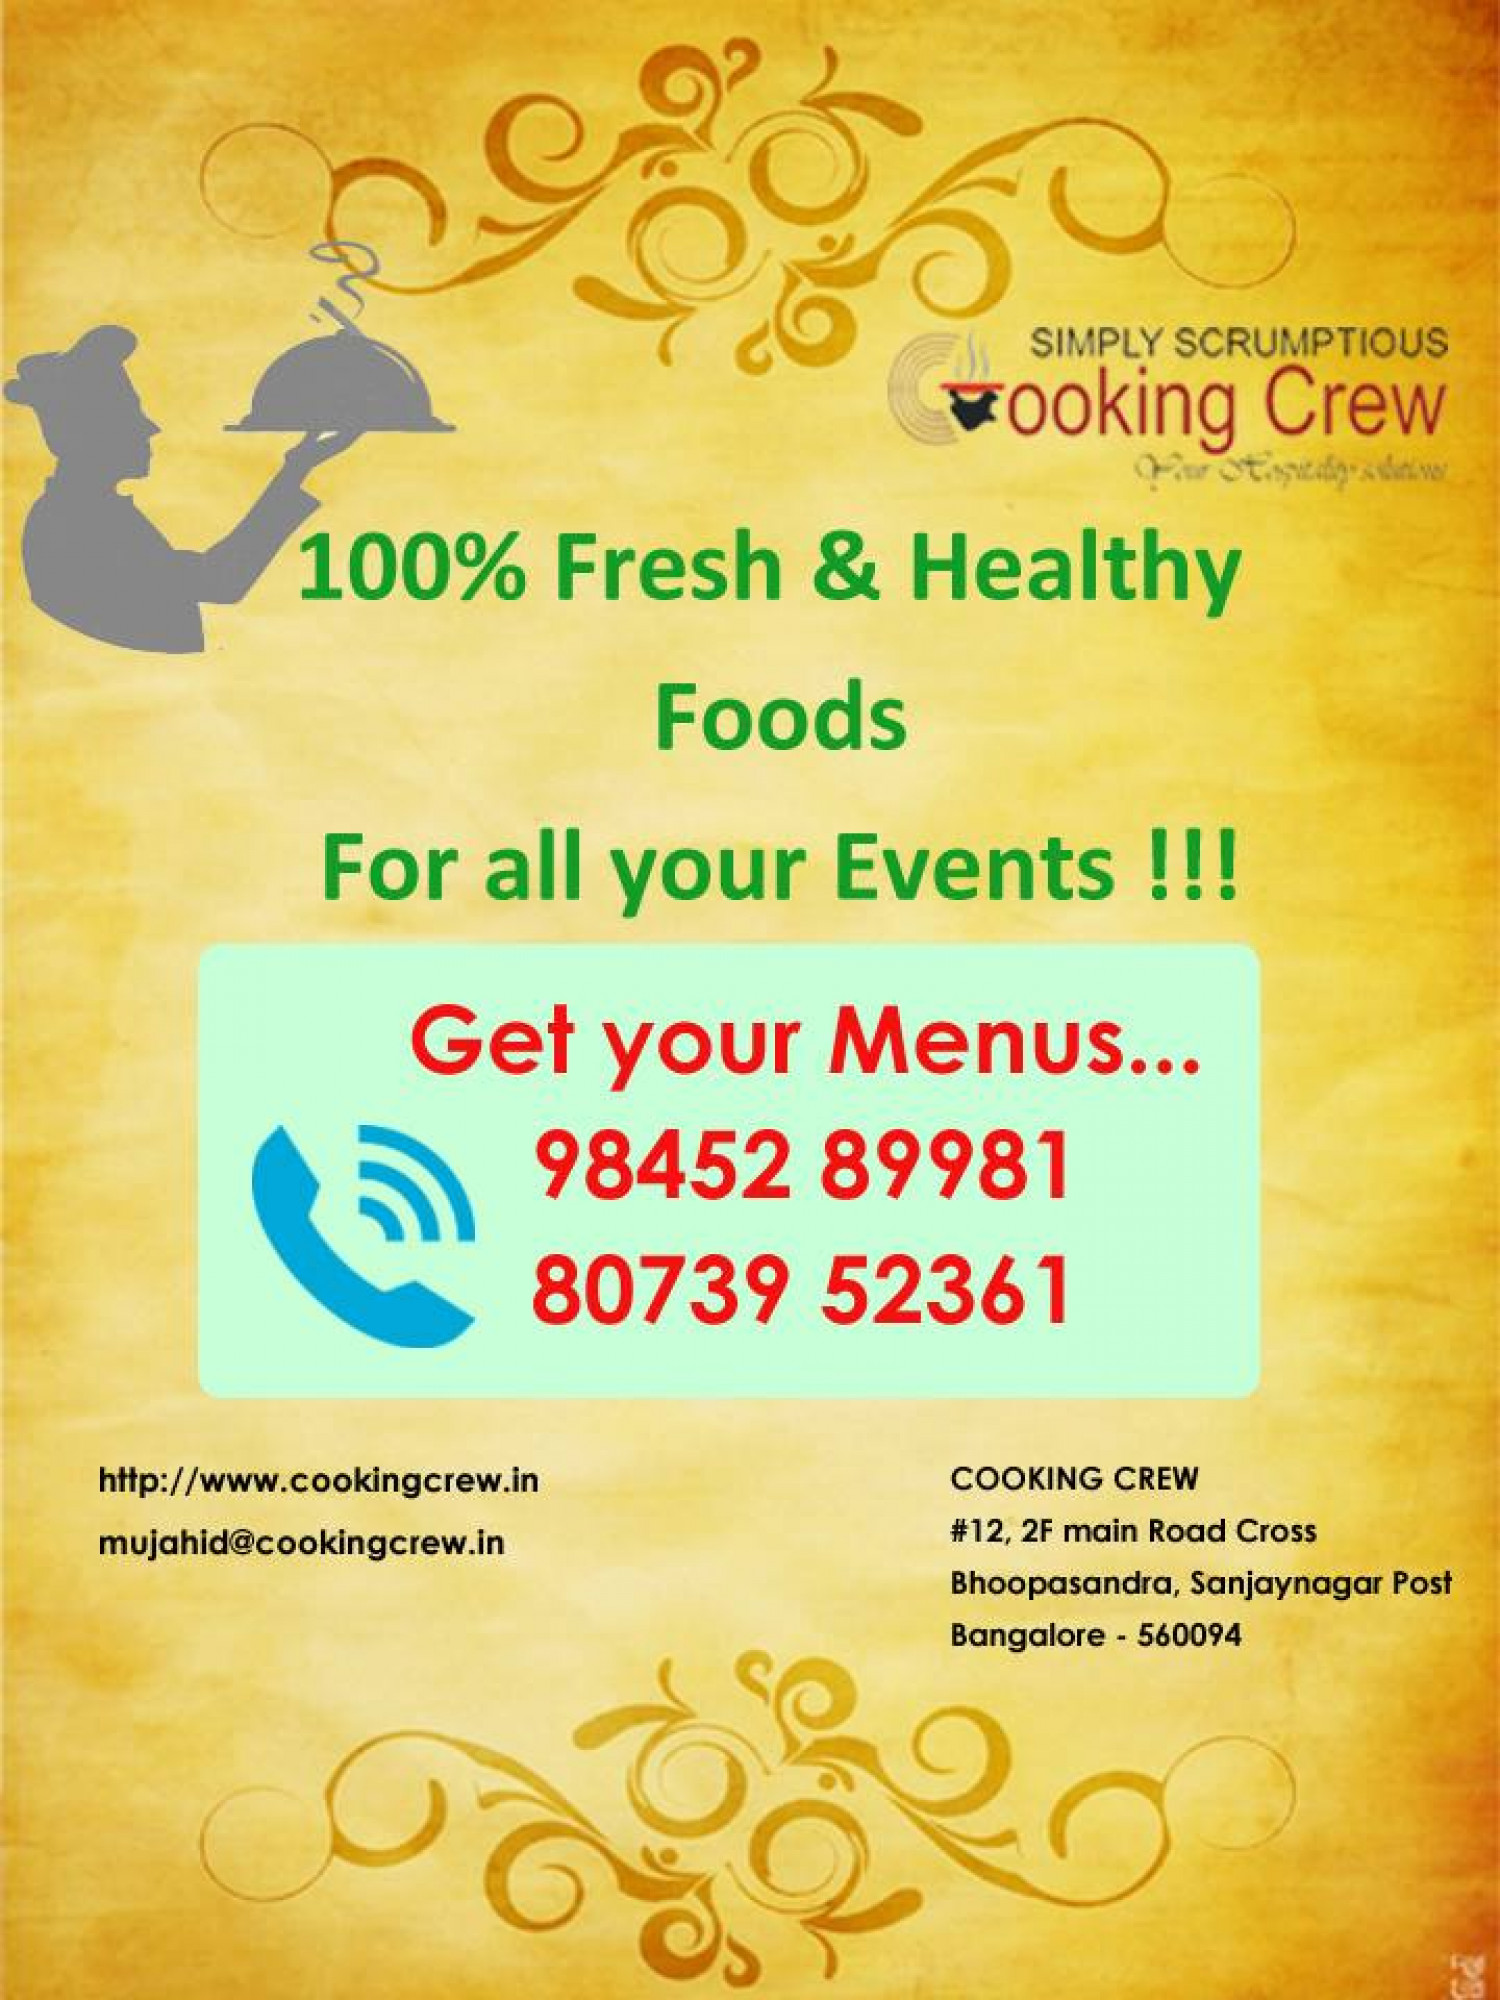 The Best Veg and Non veg Catering Services in Bangalore Infographic